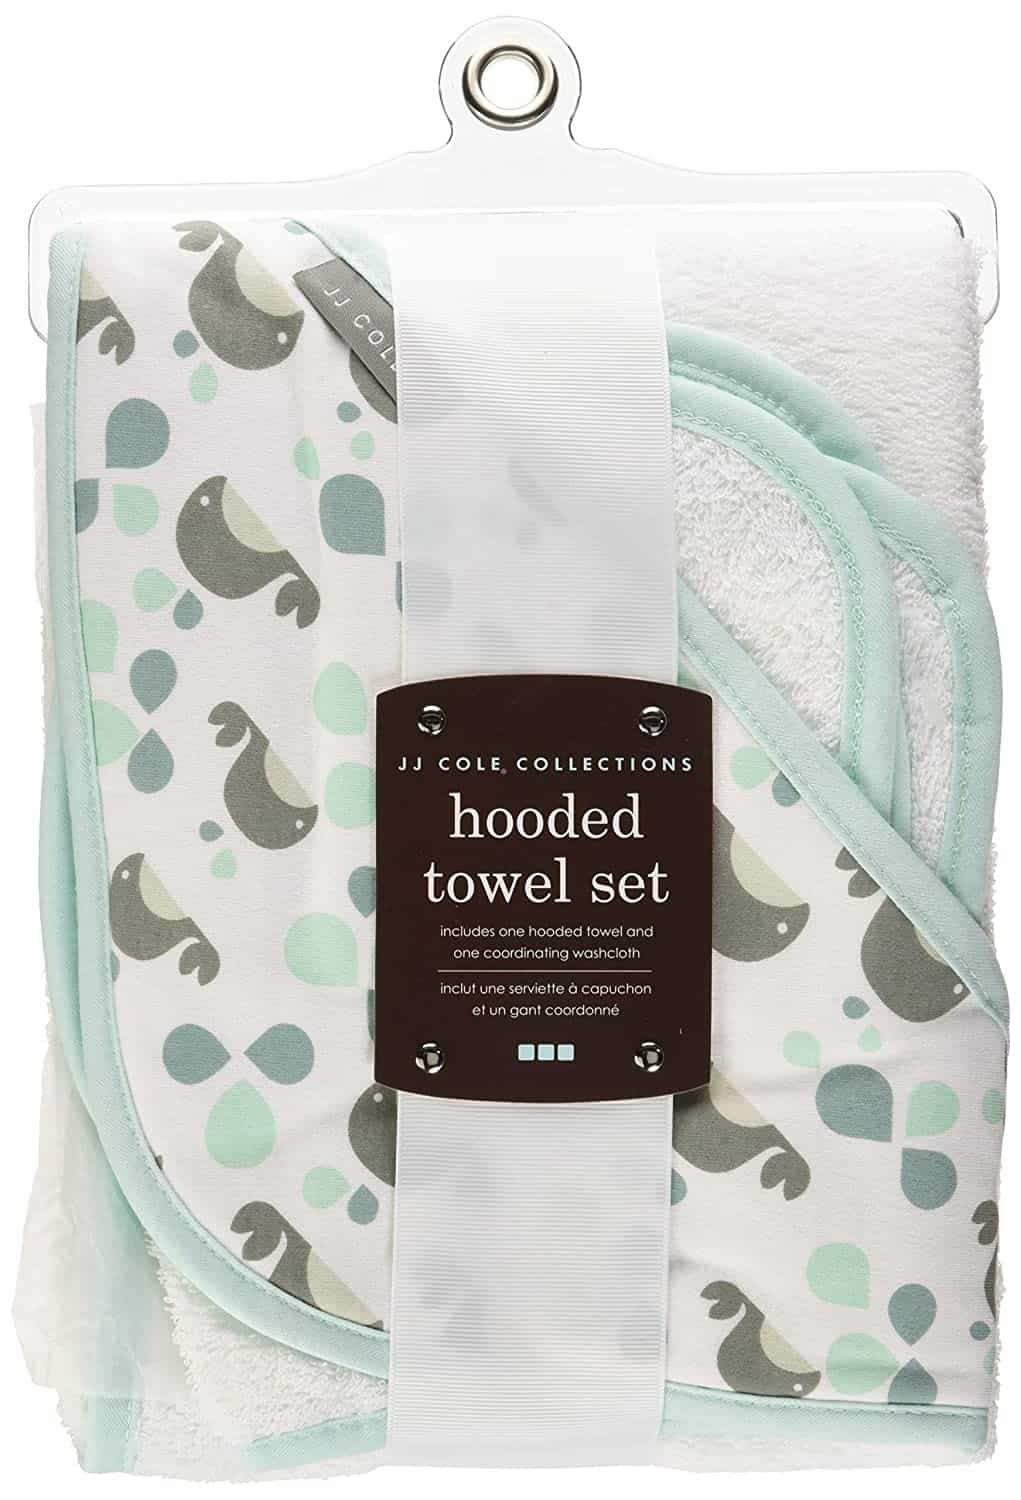 JJ-Cole-Two-Piece-Hooded-Towel-Set